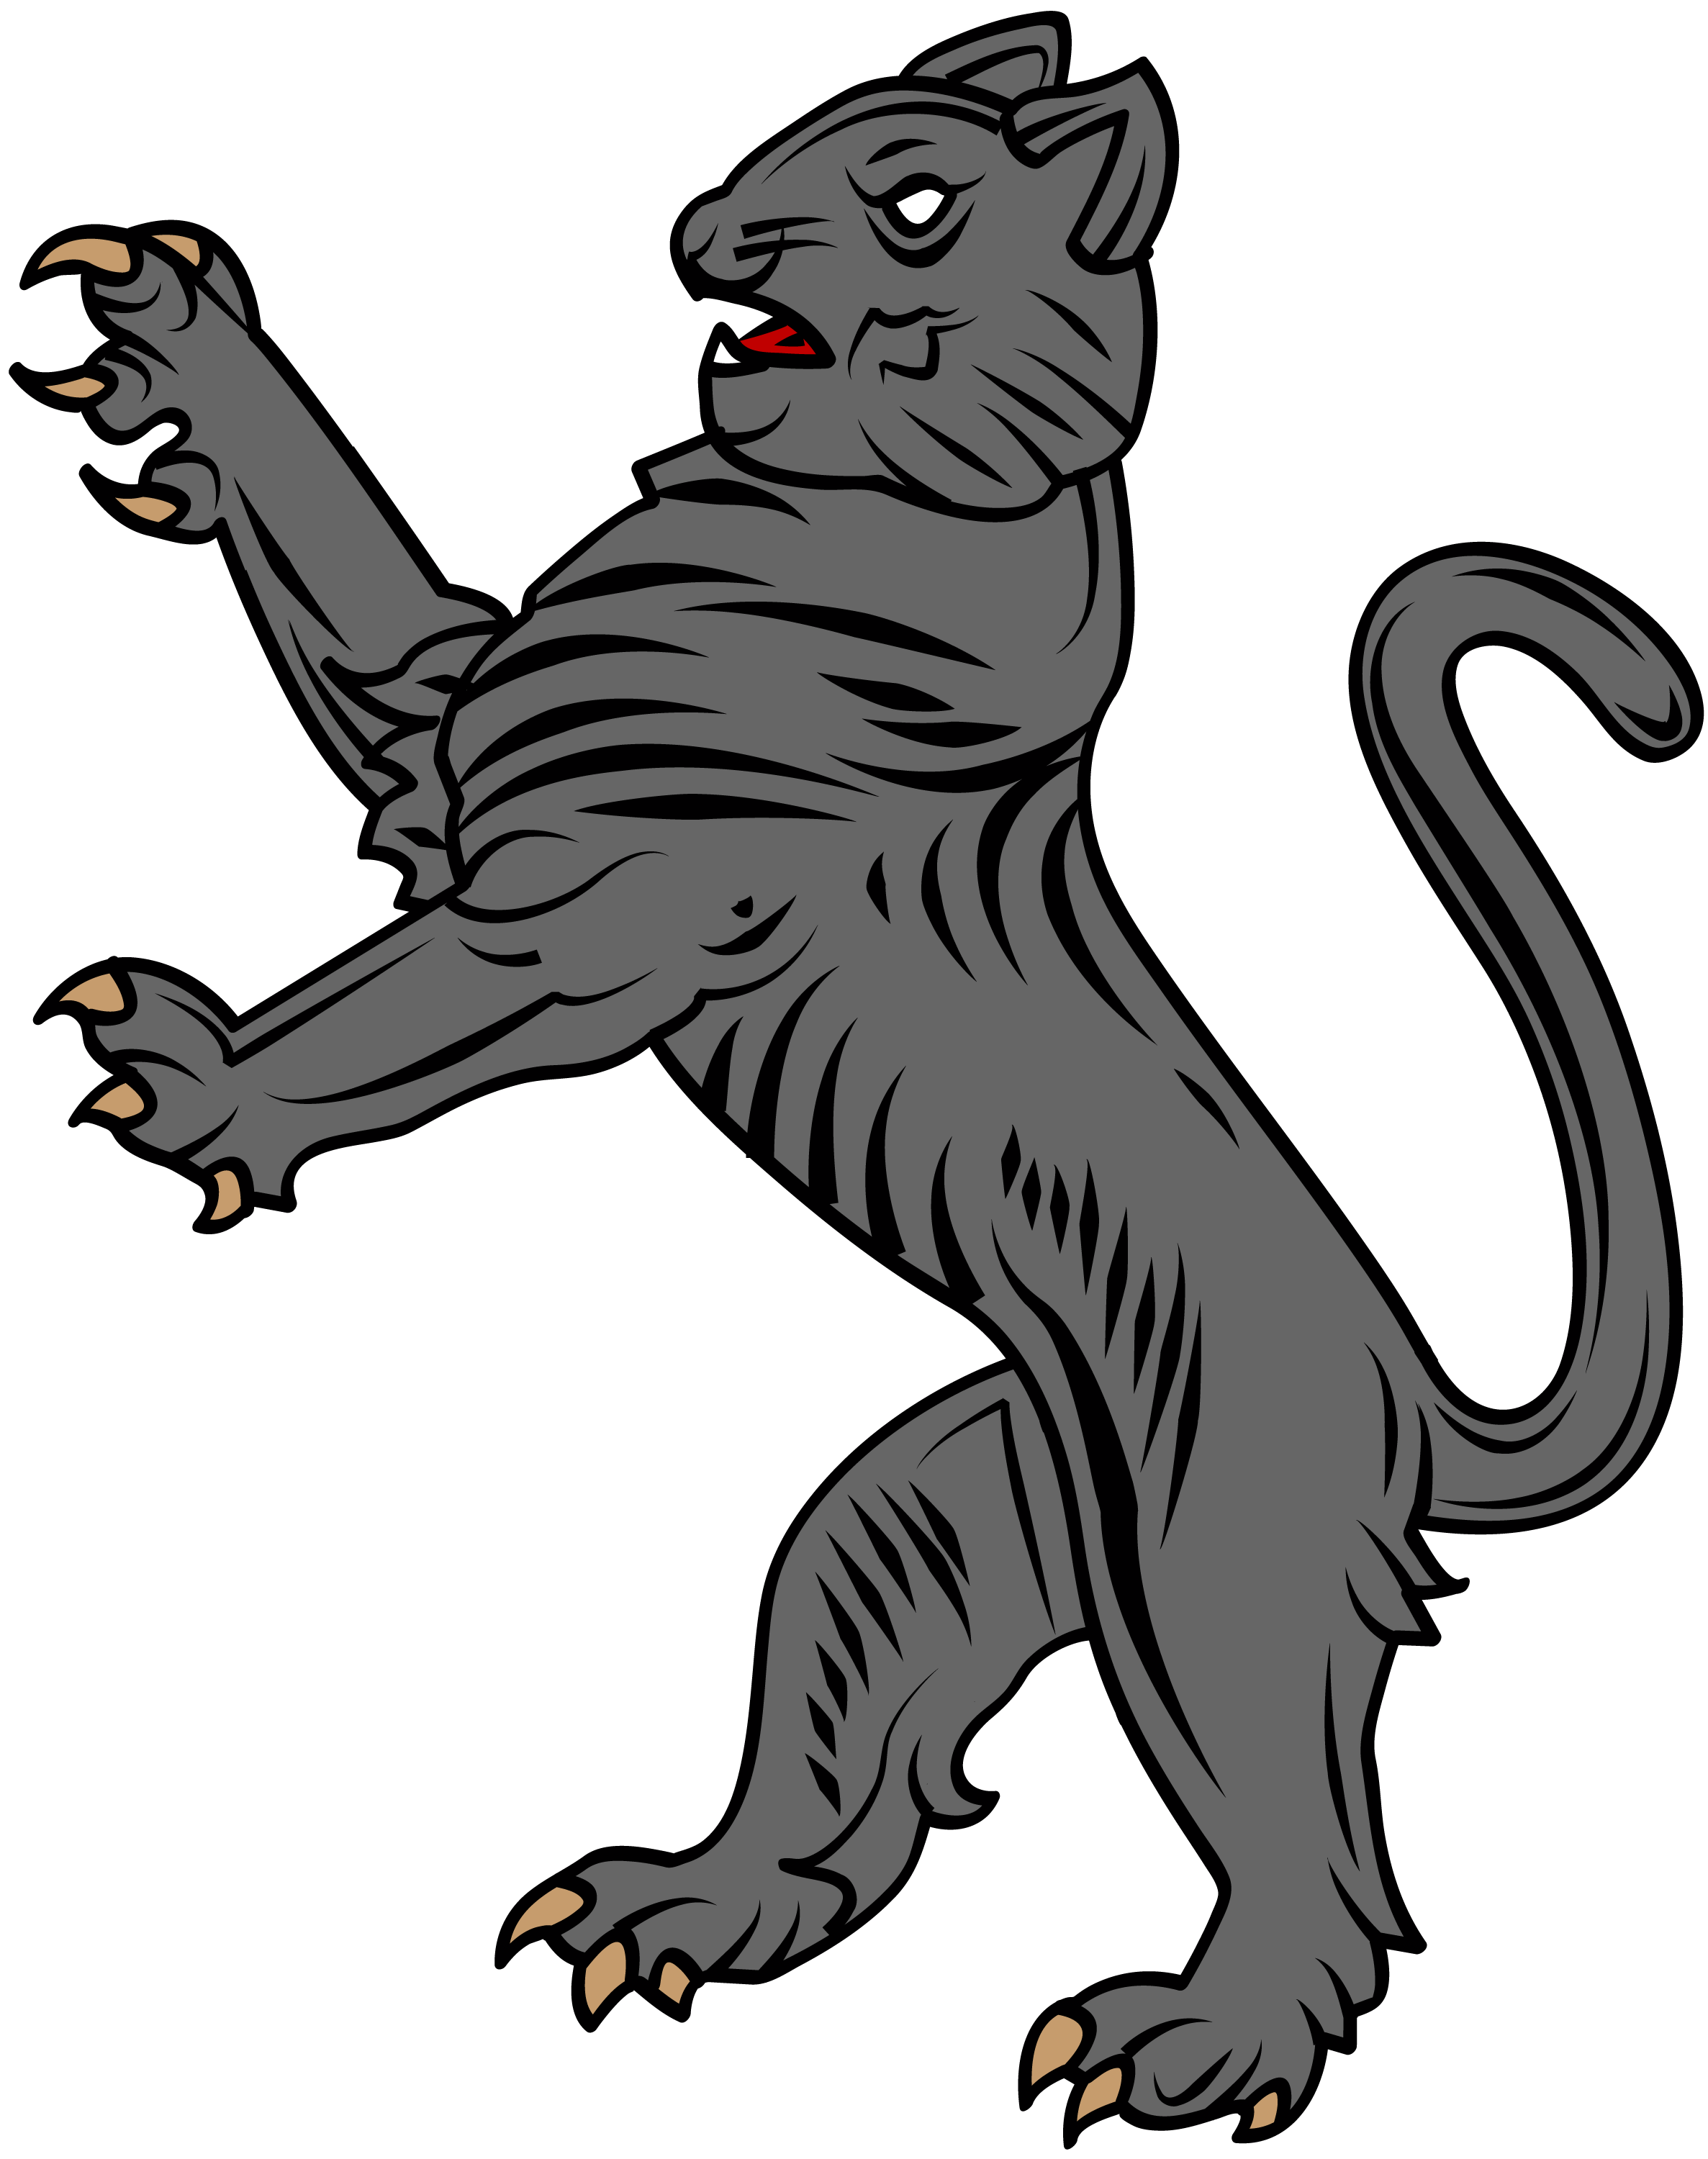 Mean dog clipart clipart black and white download Mean Cat Clipart | Free download best Mean Cat Clipart on ClipArtMag.com clipart black and white download